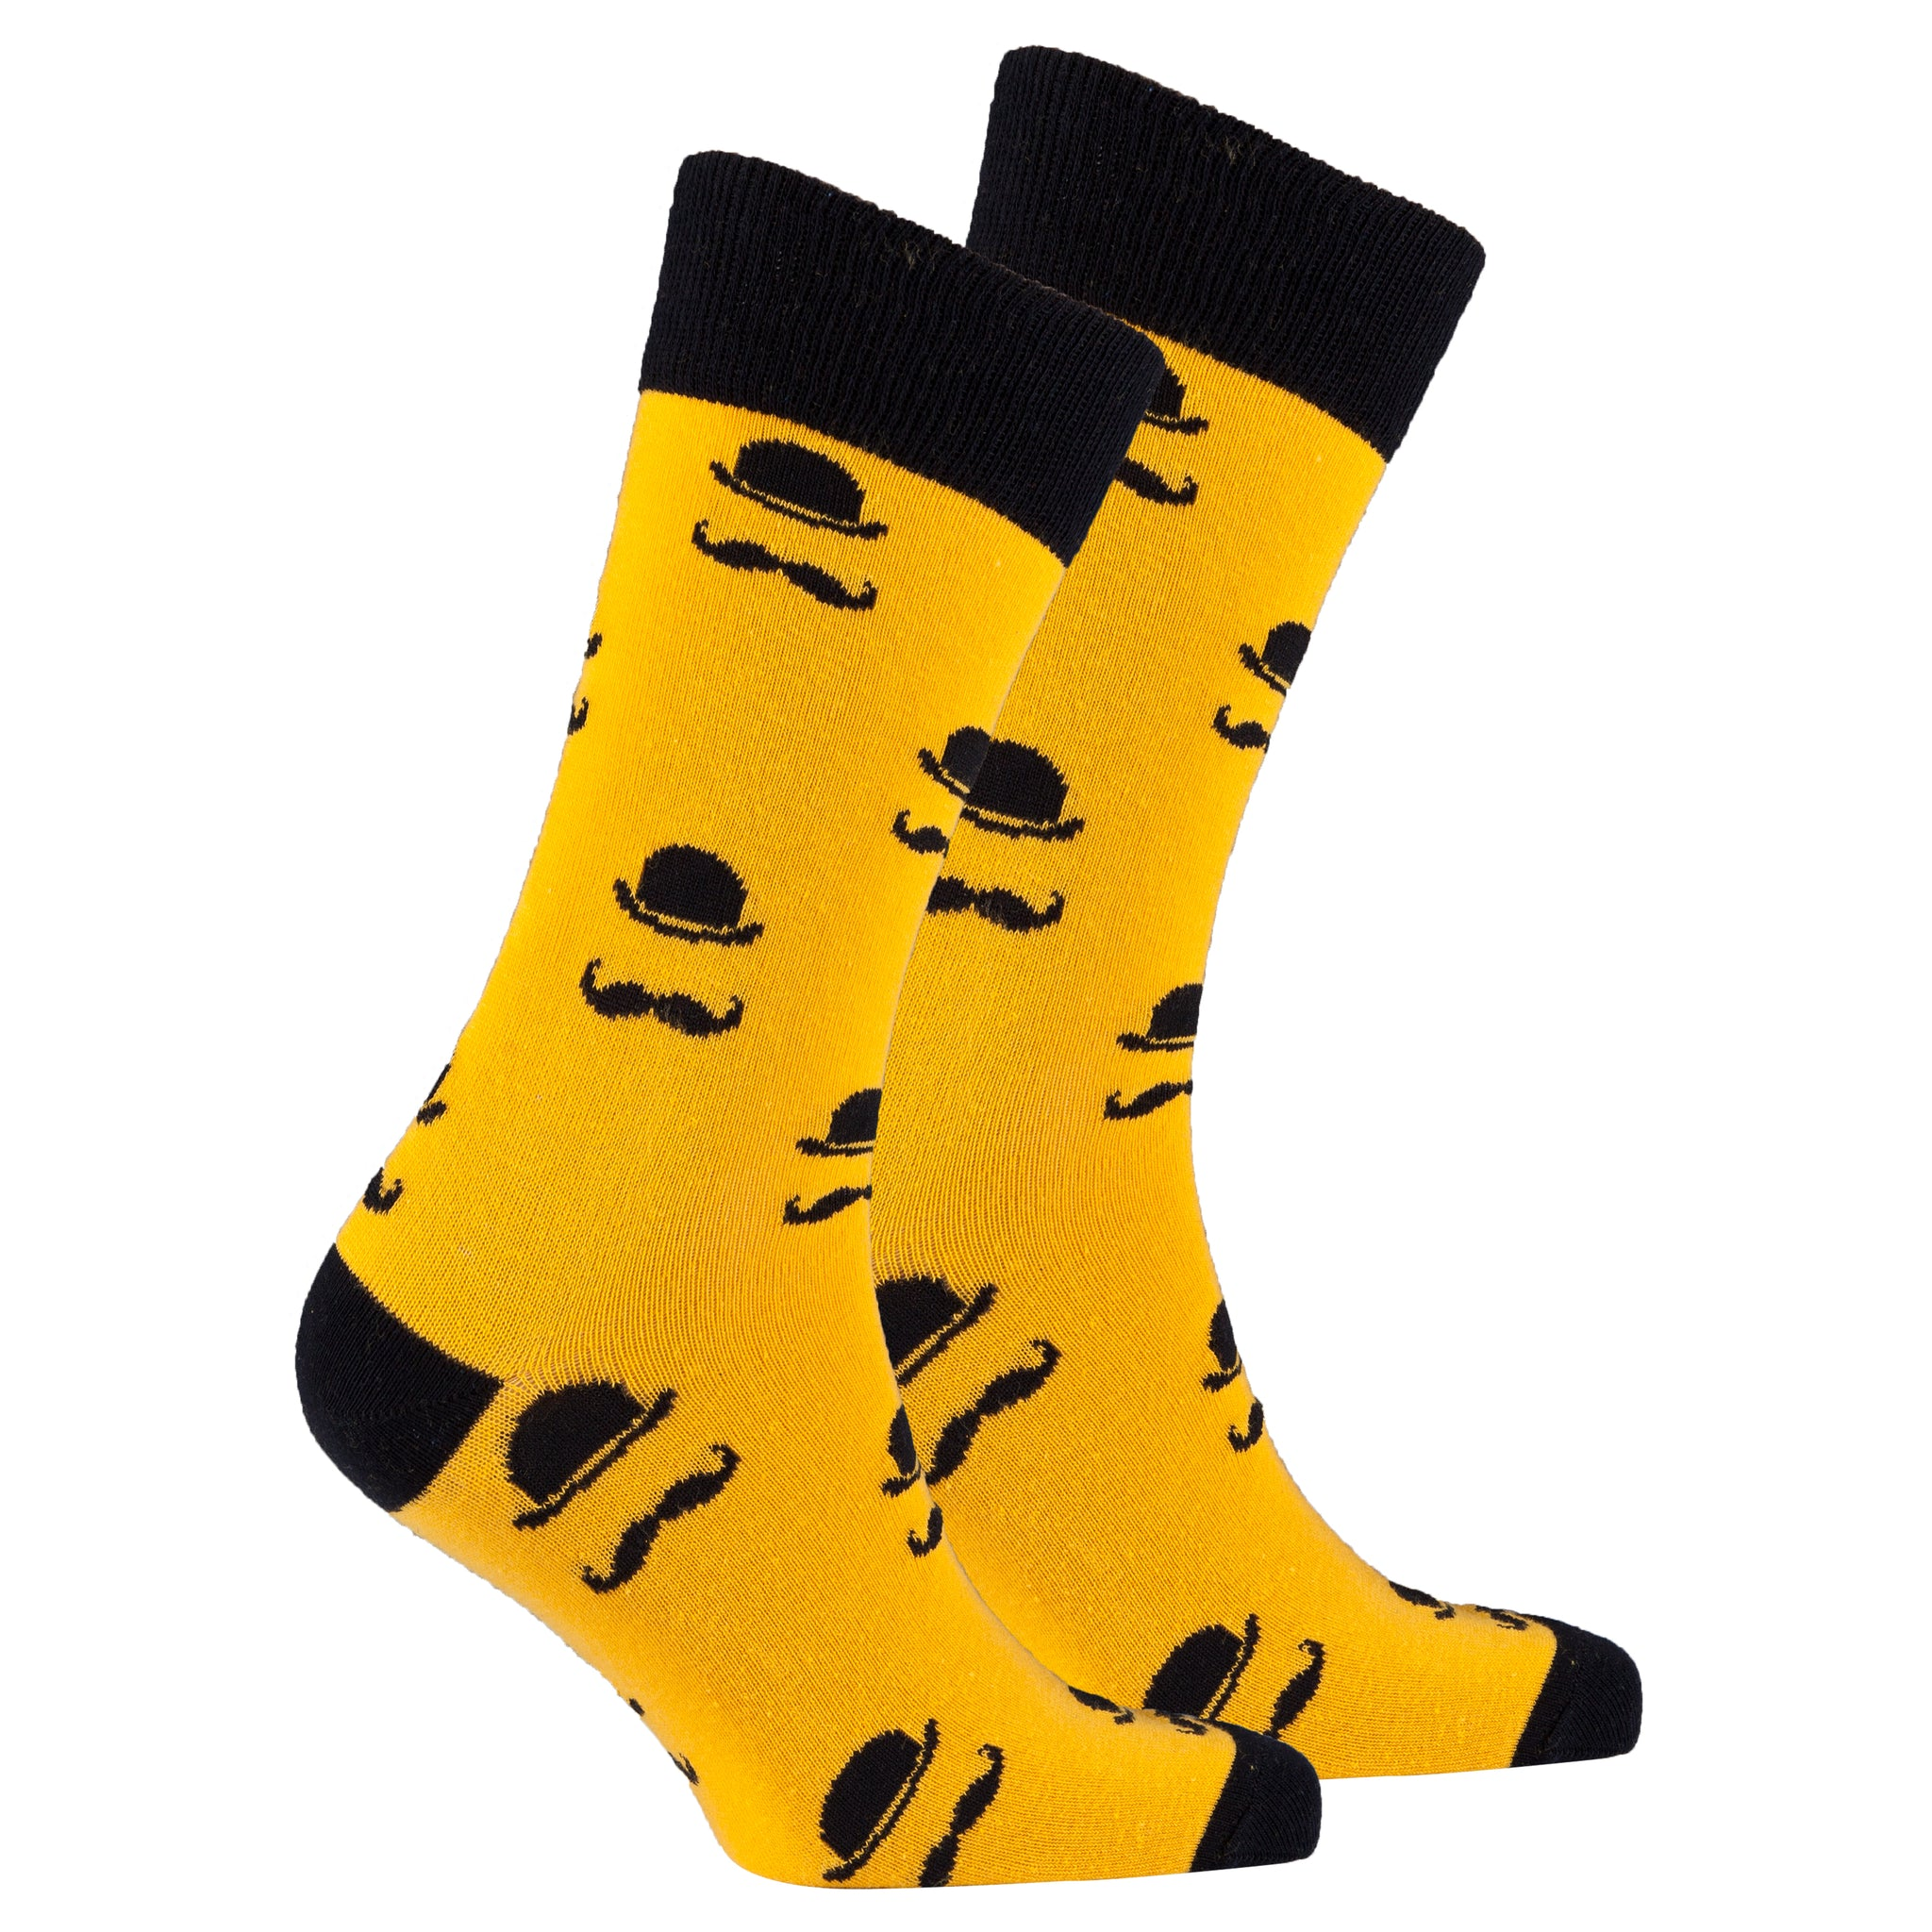 Men's Stache Socks